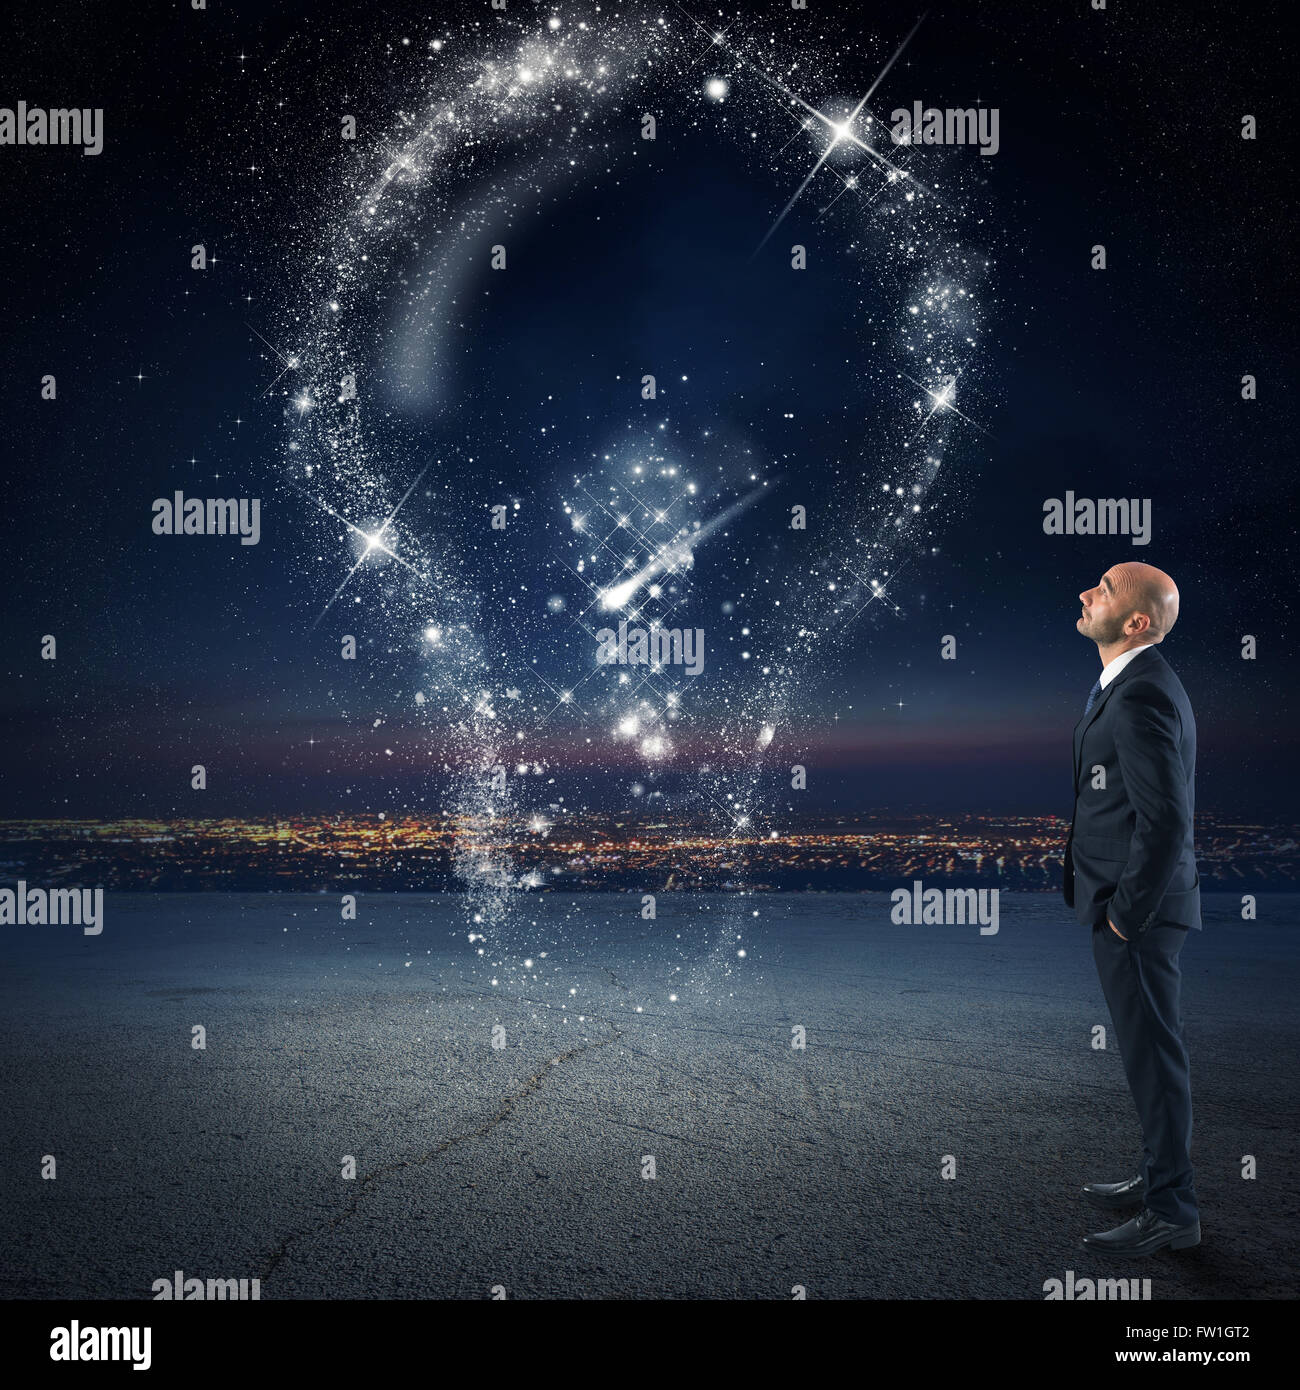 Bright idea as the stars - Stock Image